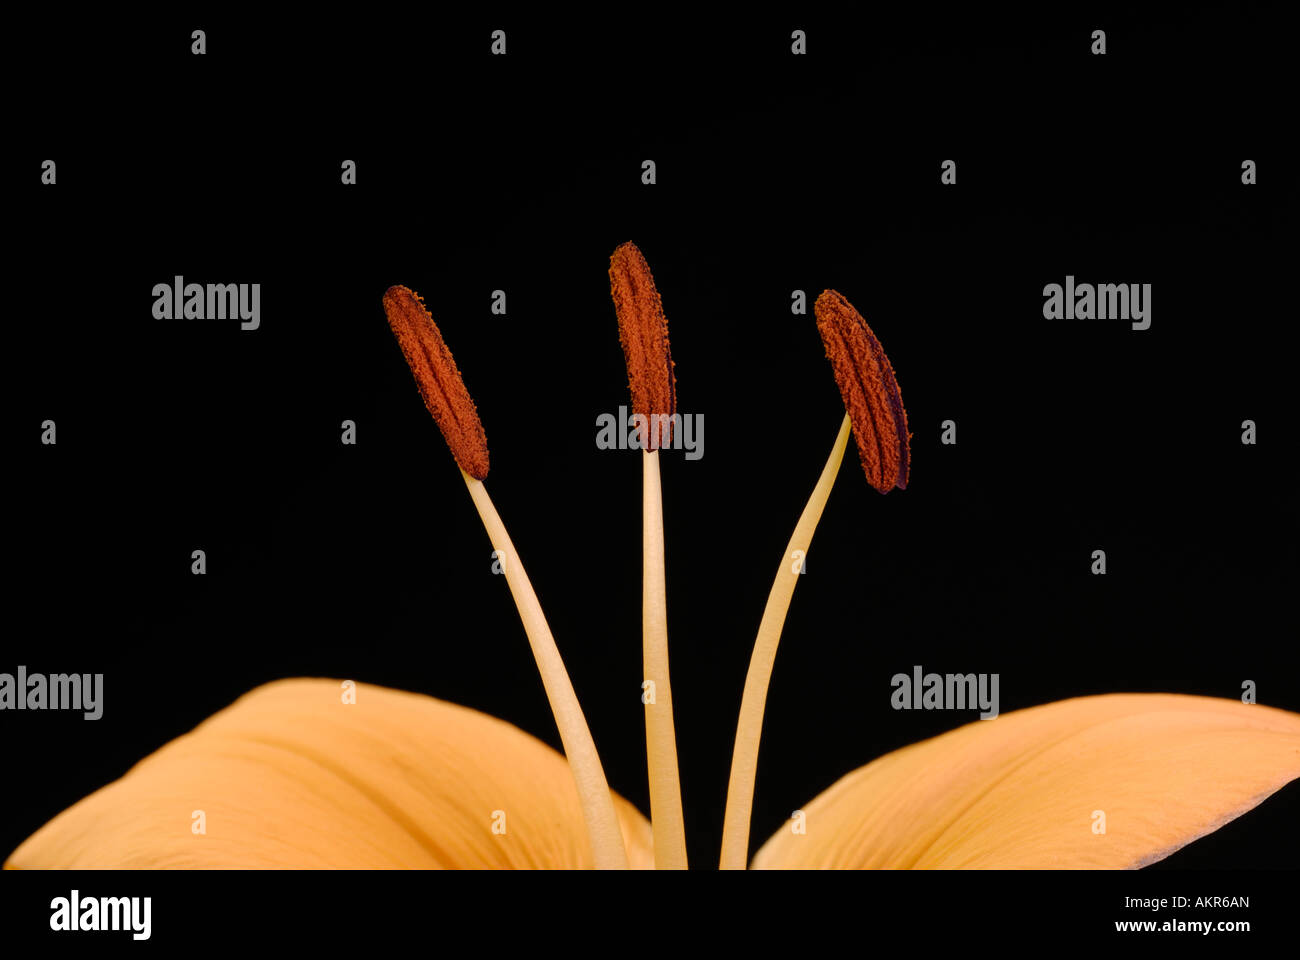 Close-up of stamens with ripe anthers - Stock Image